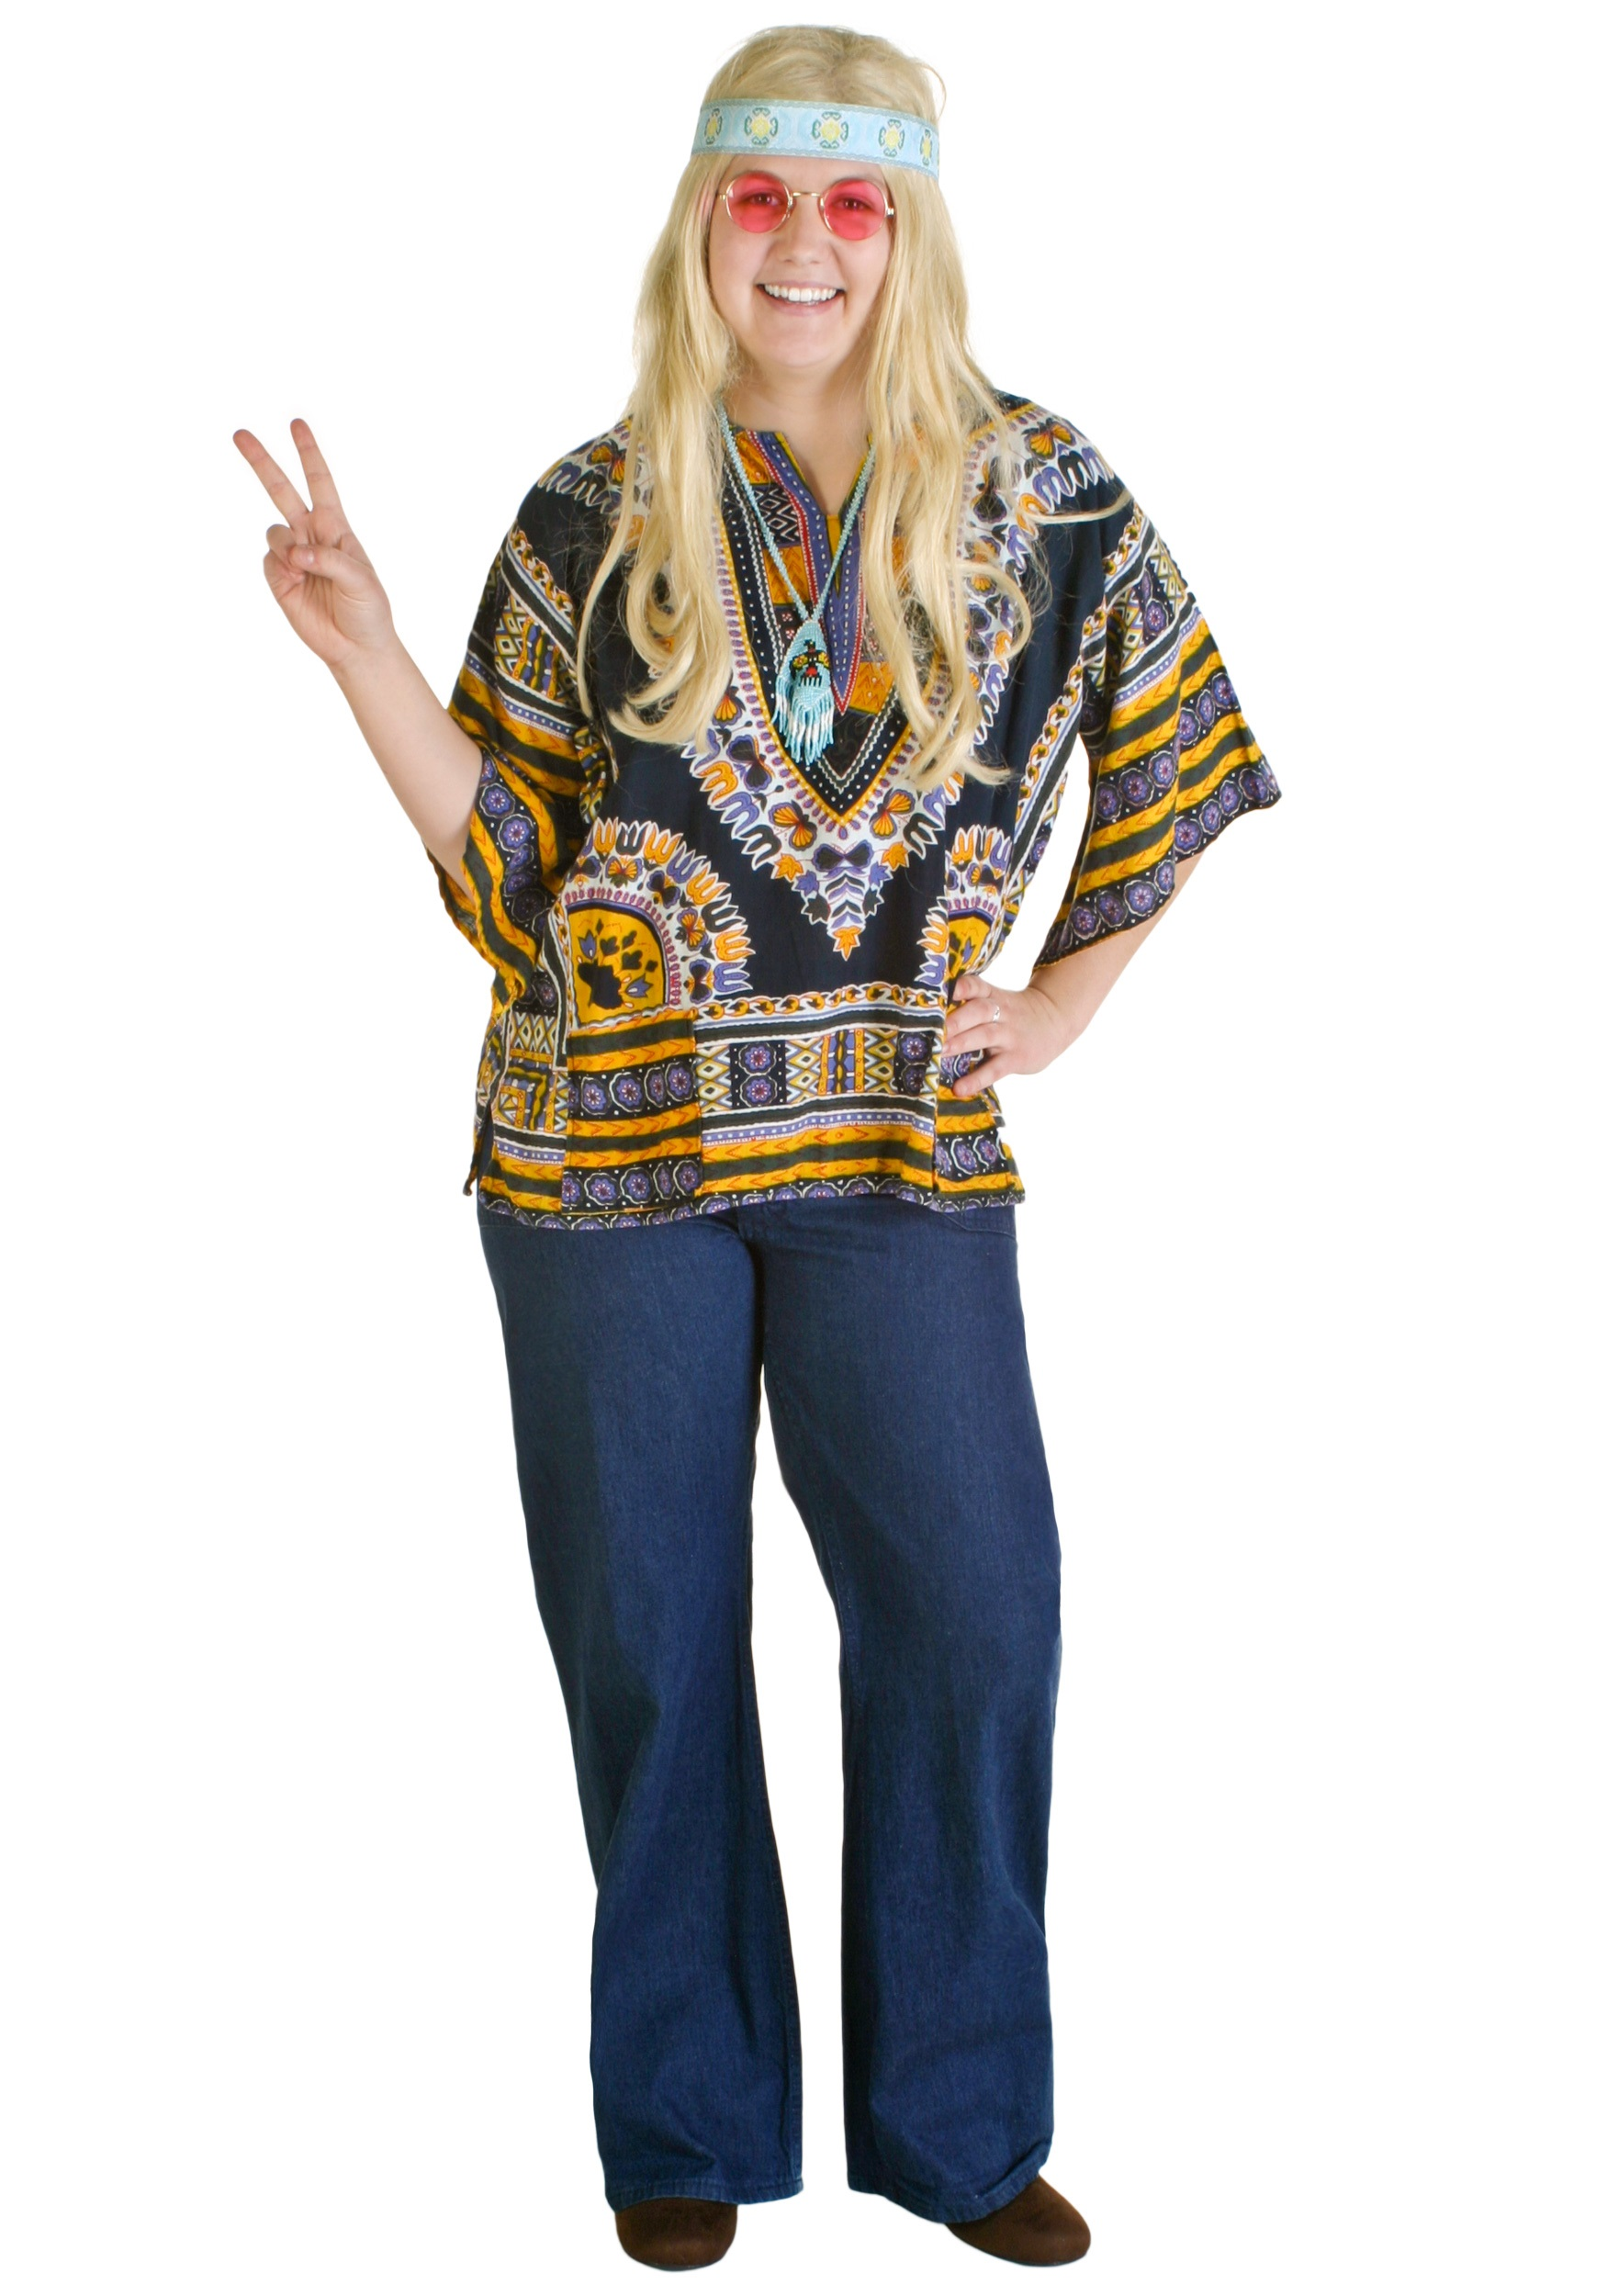 60s Hippie Girl Costume  sc 1 st  Costumes Galore & 60s Hippie Girl Costume - 1970s Halloween Costumes